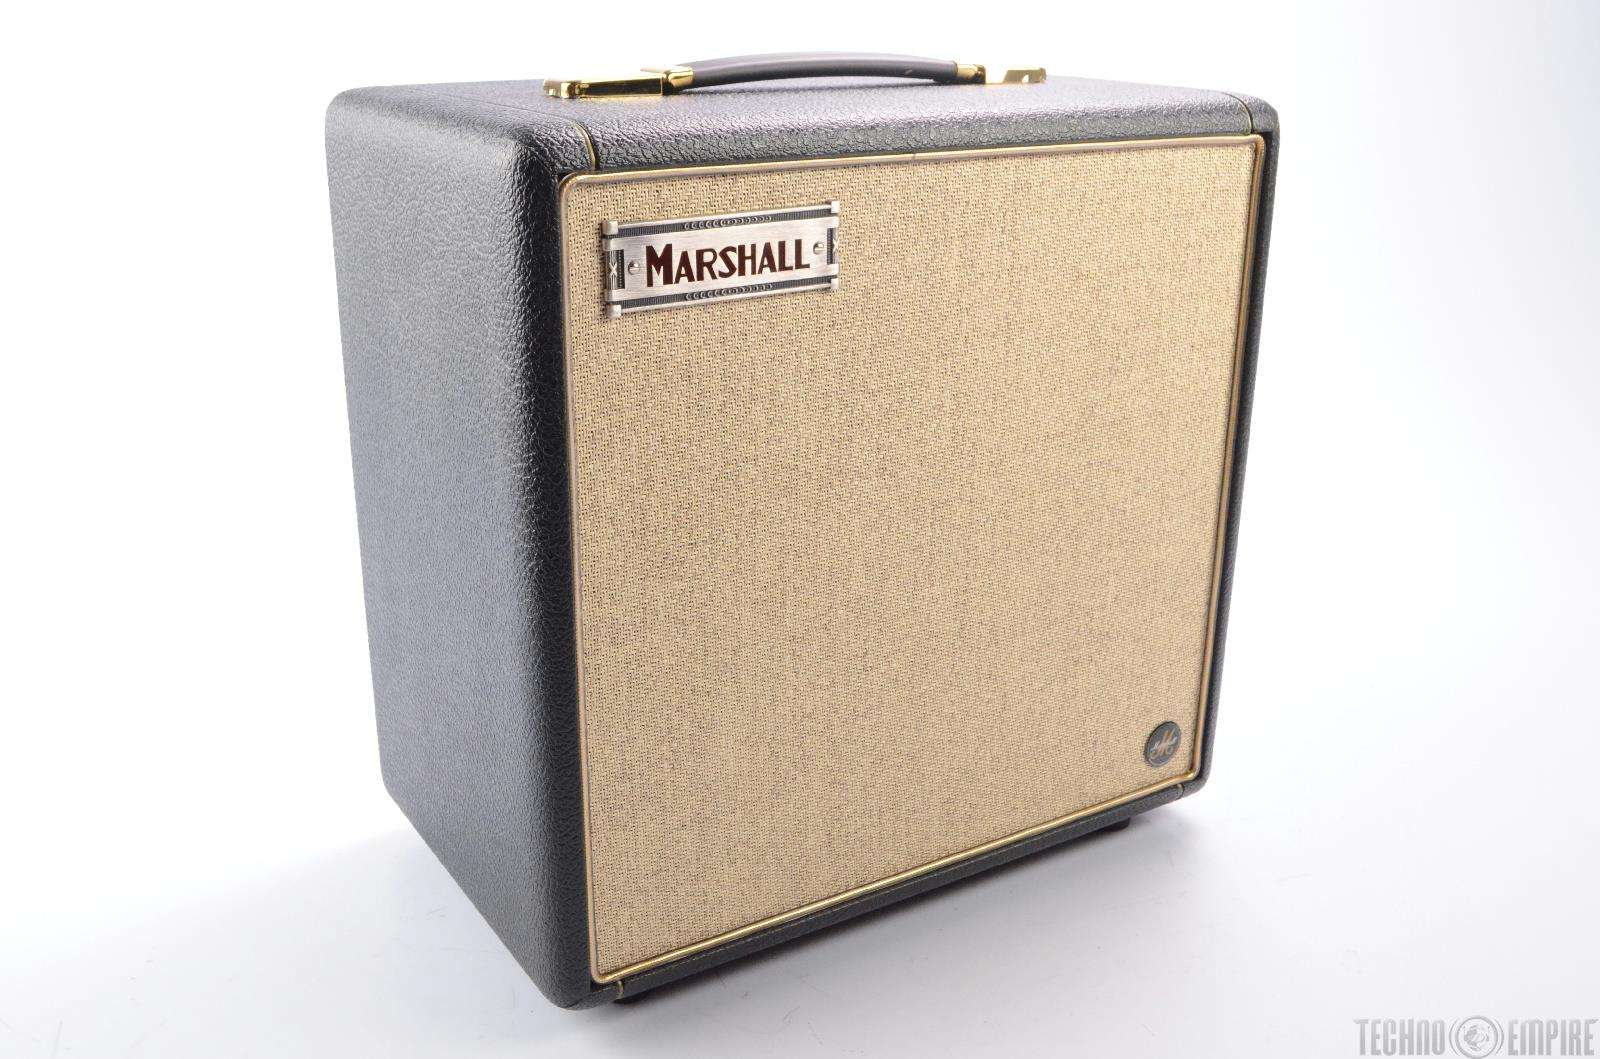 marshall csc110os 1x10 15w offset guitar cabinet celestion g10f 15 new 19985 ebay. Black Bedroom Furniture Sets. Home Design Ideas